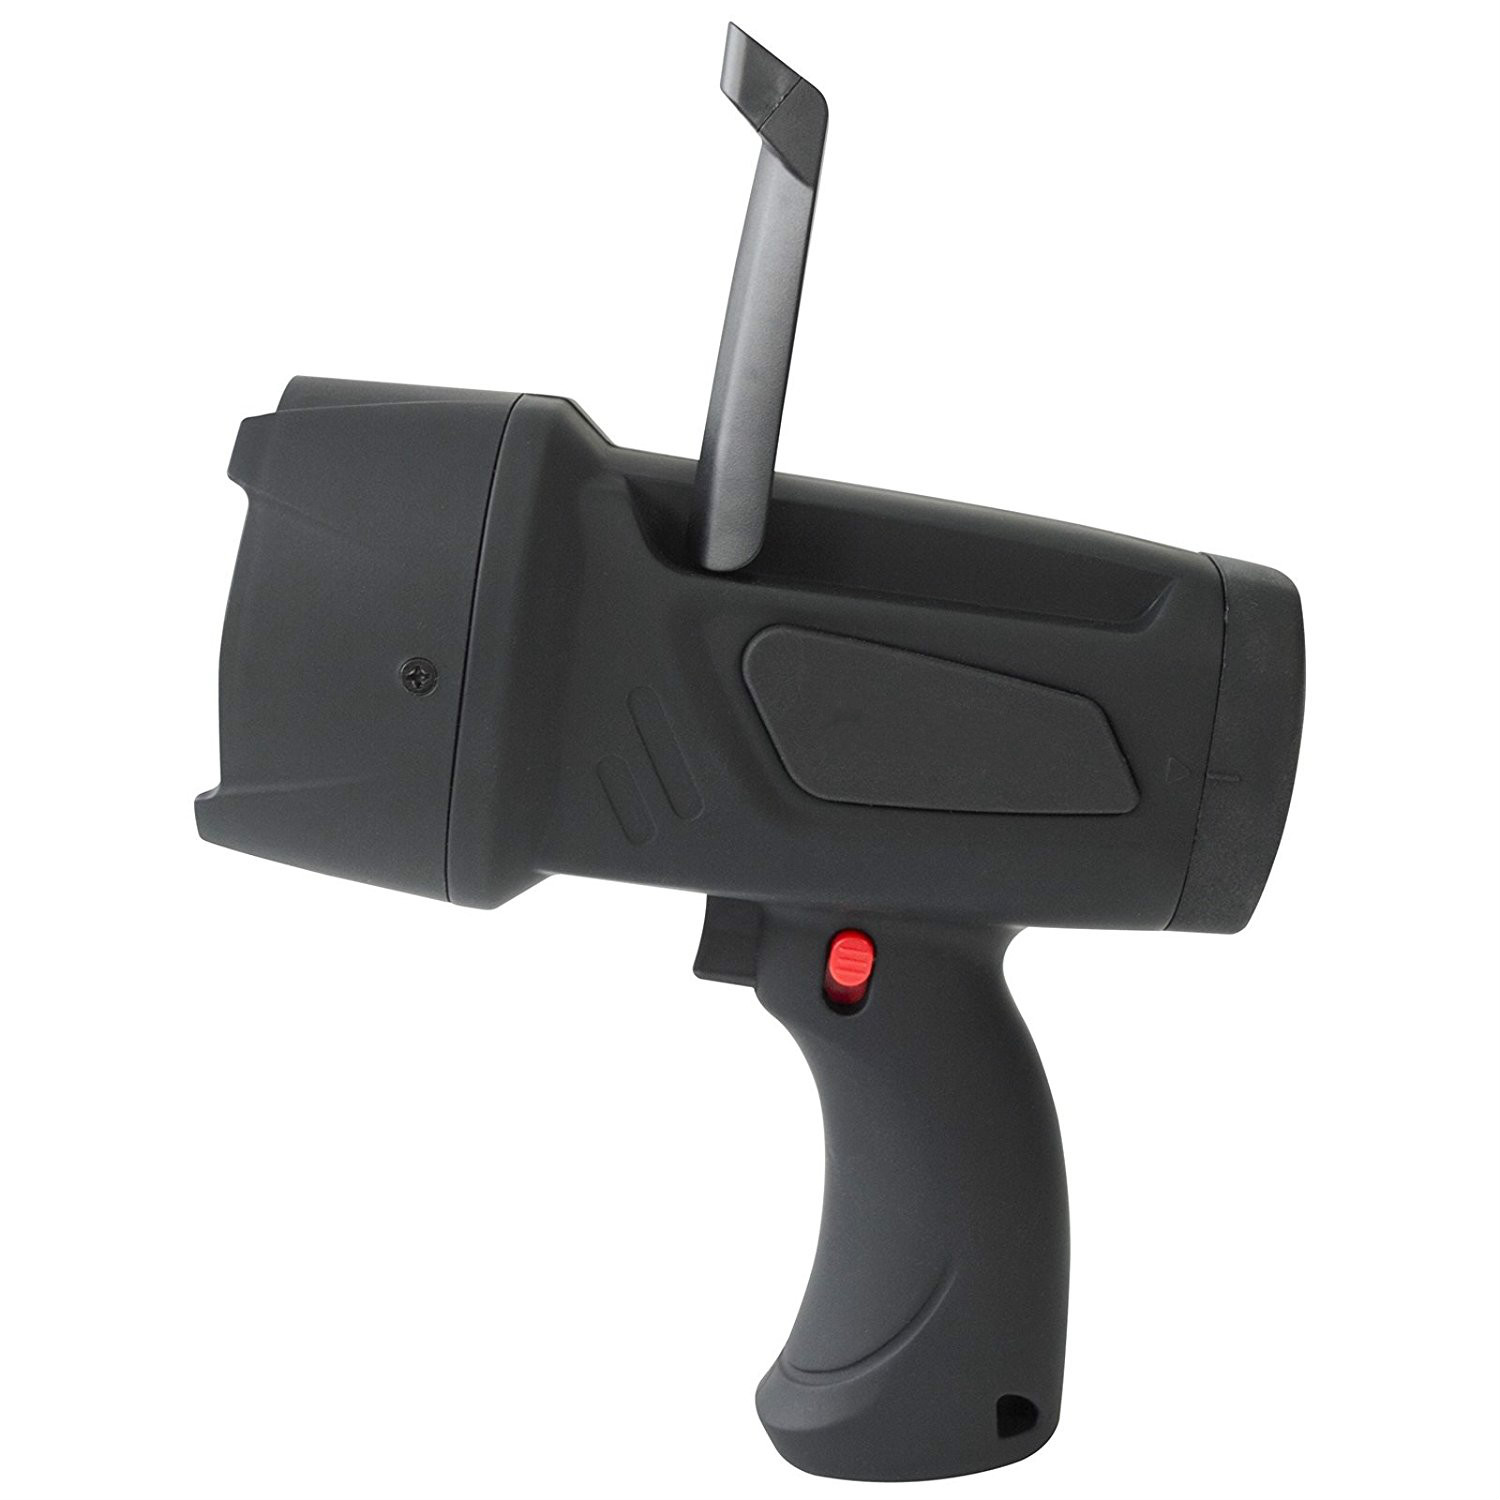 reasonable handheld spotlight outdoor series for sports-2